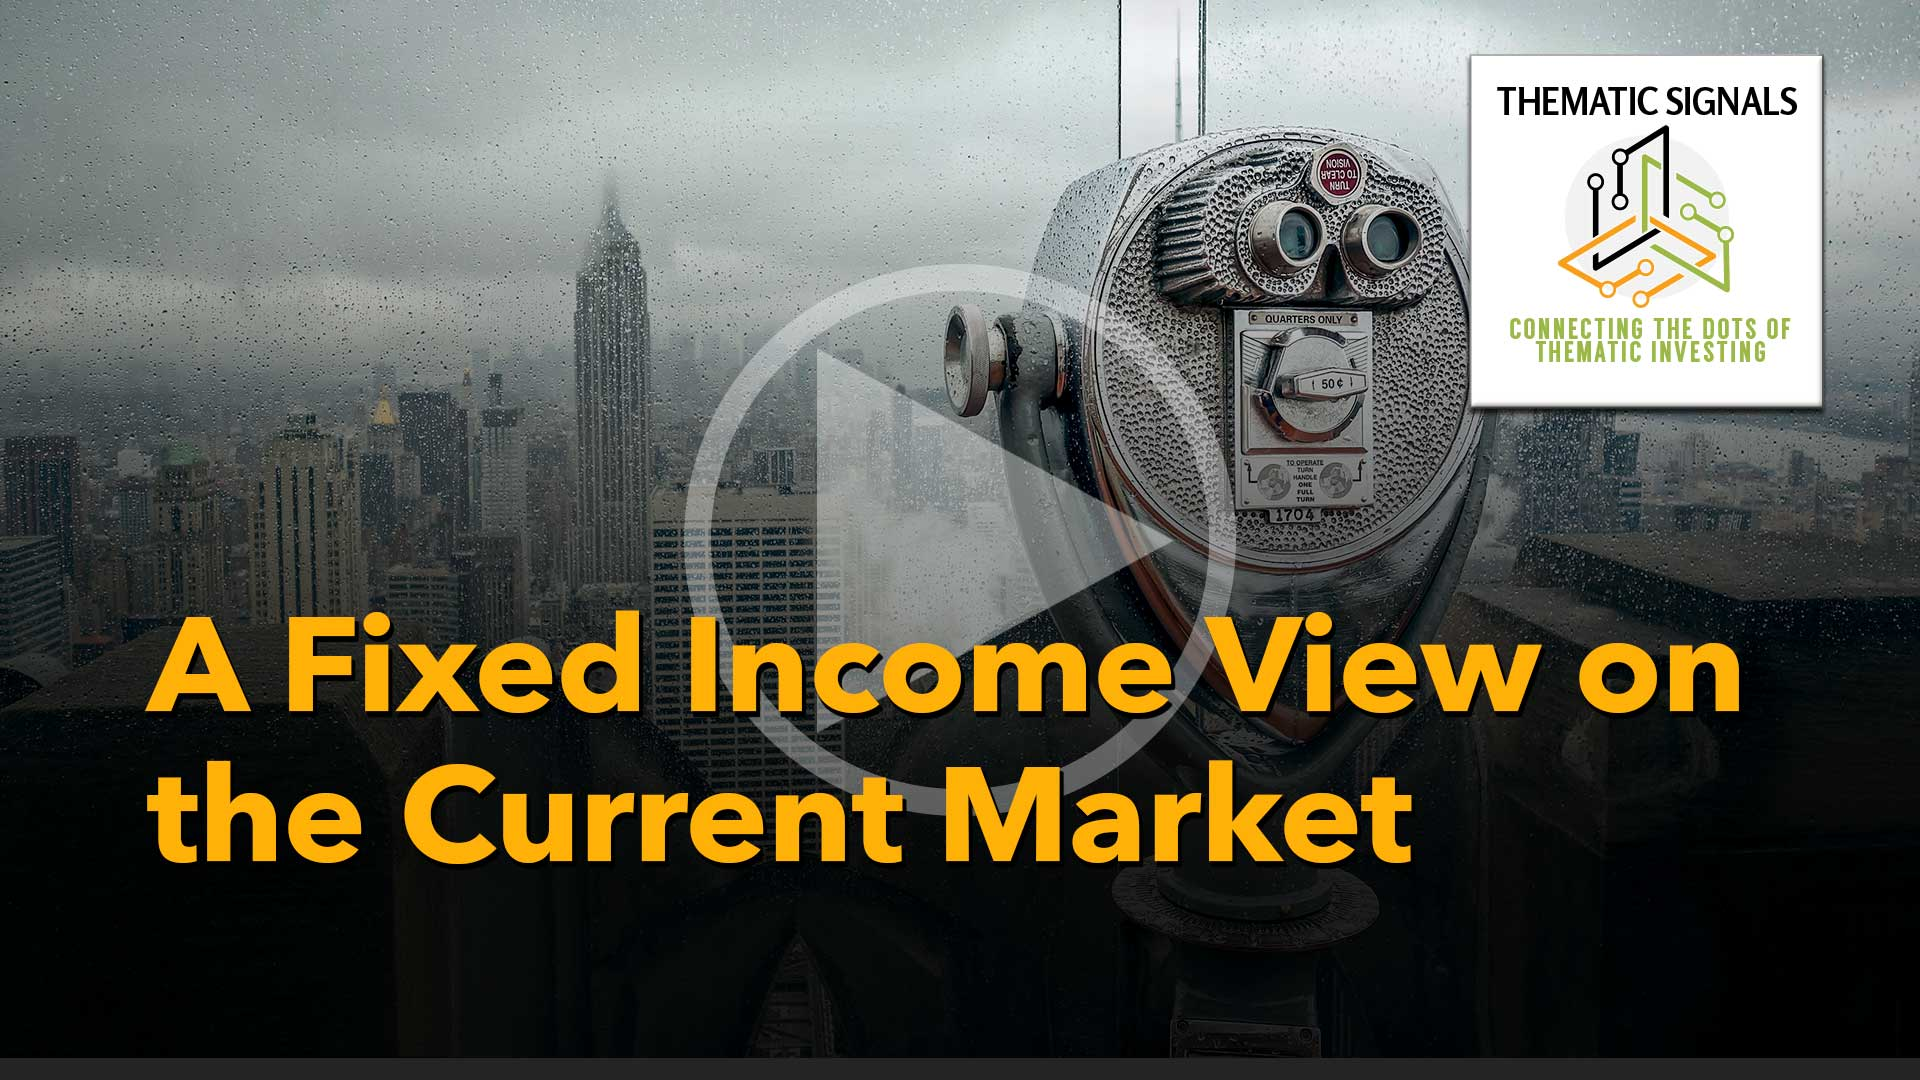 A Fixed Income View on the Current Market